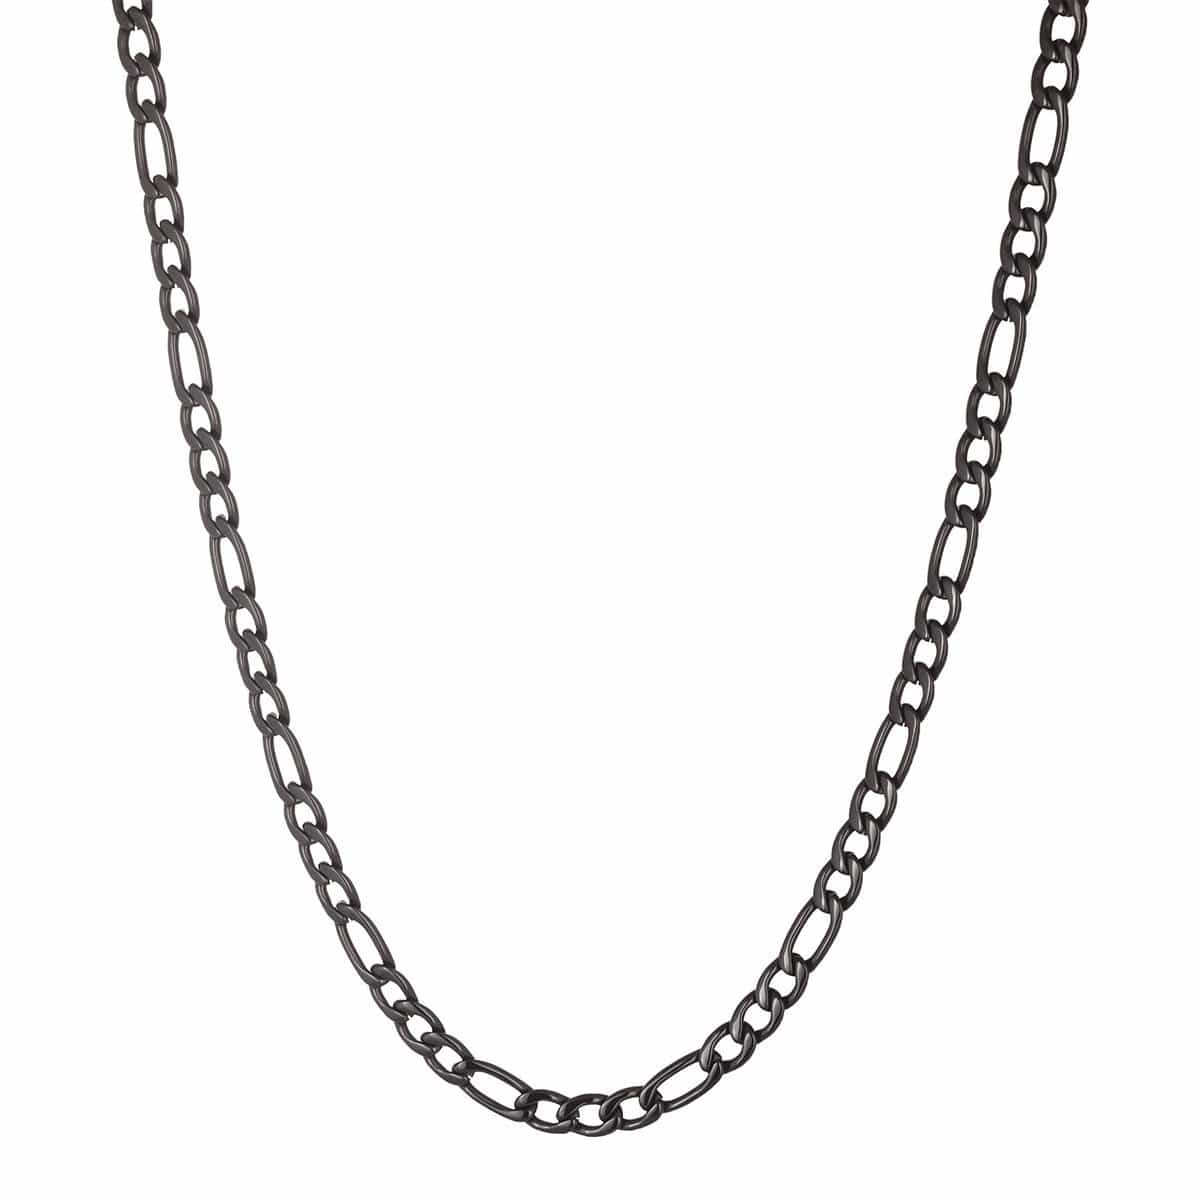 Black Stainless Steel 6mm Figaro Classic Chain